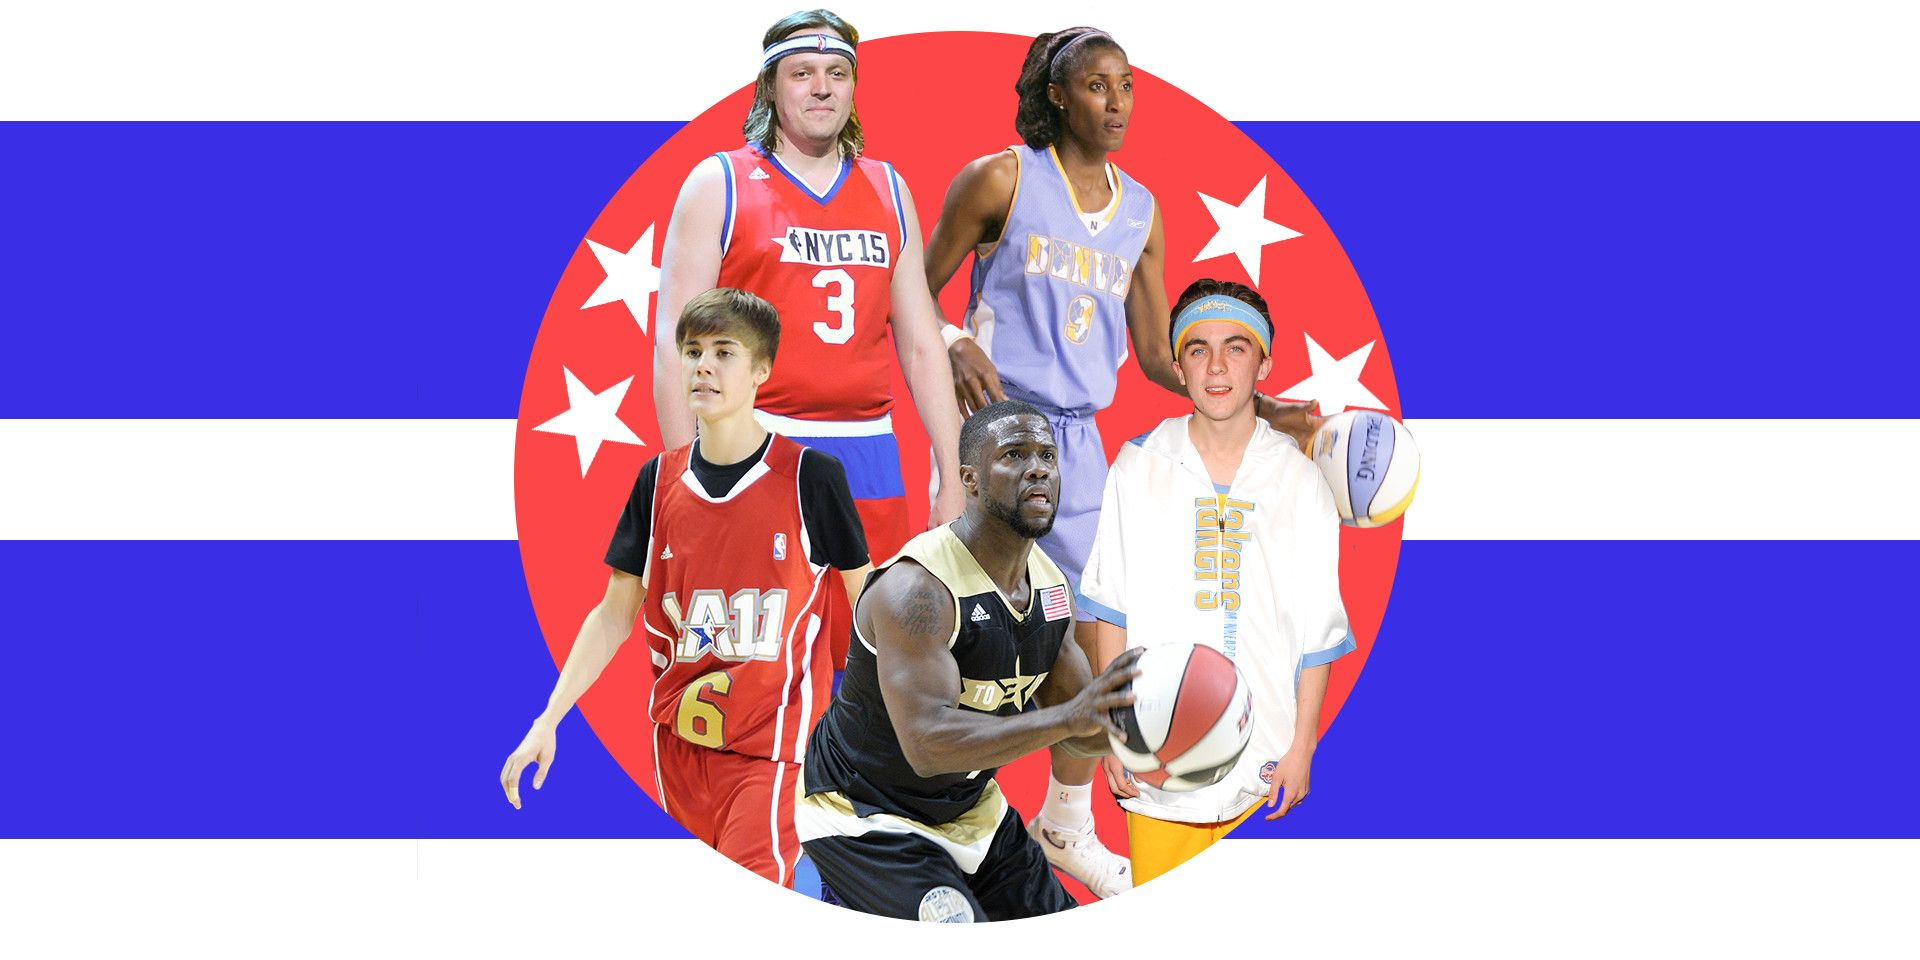 The Best Celebrity Basketball Game